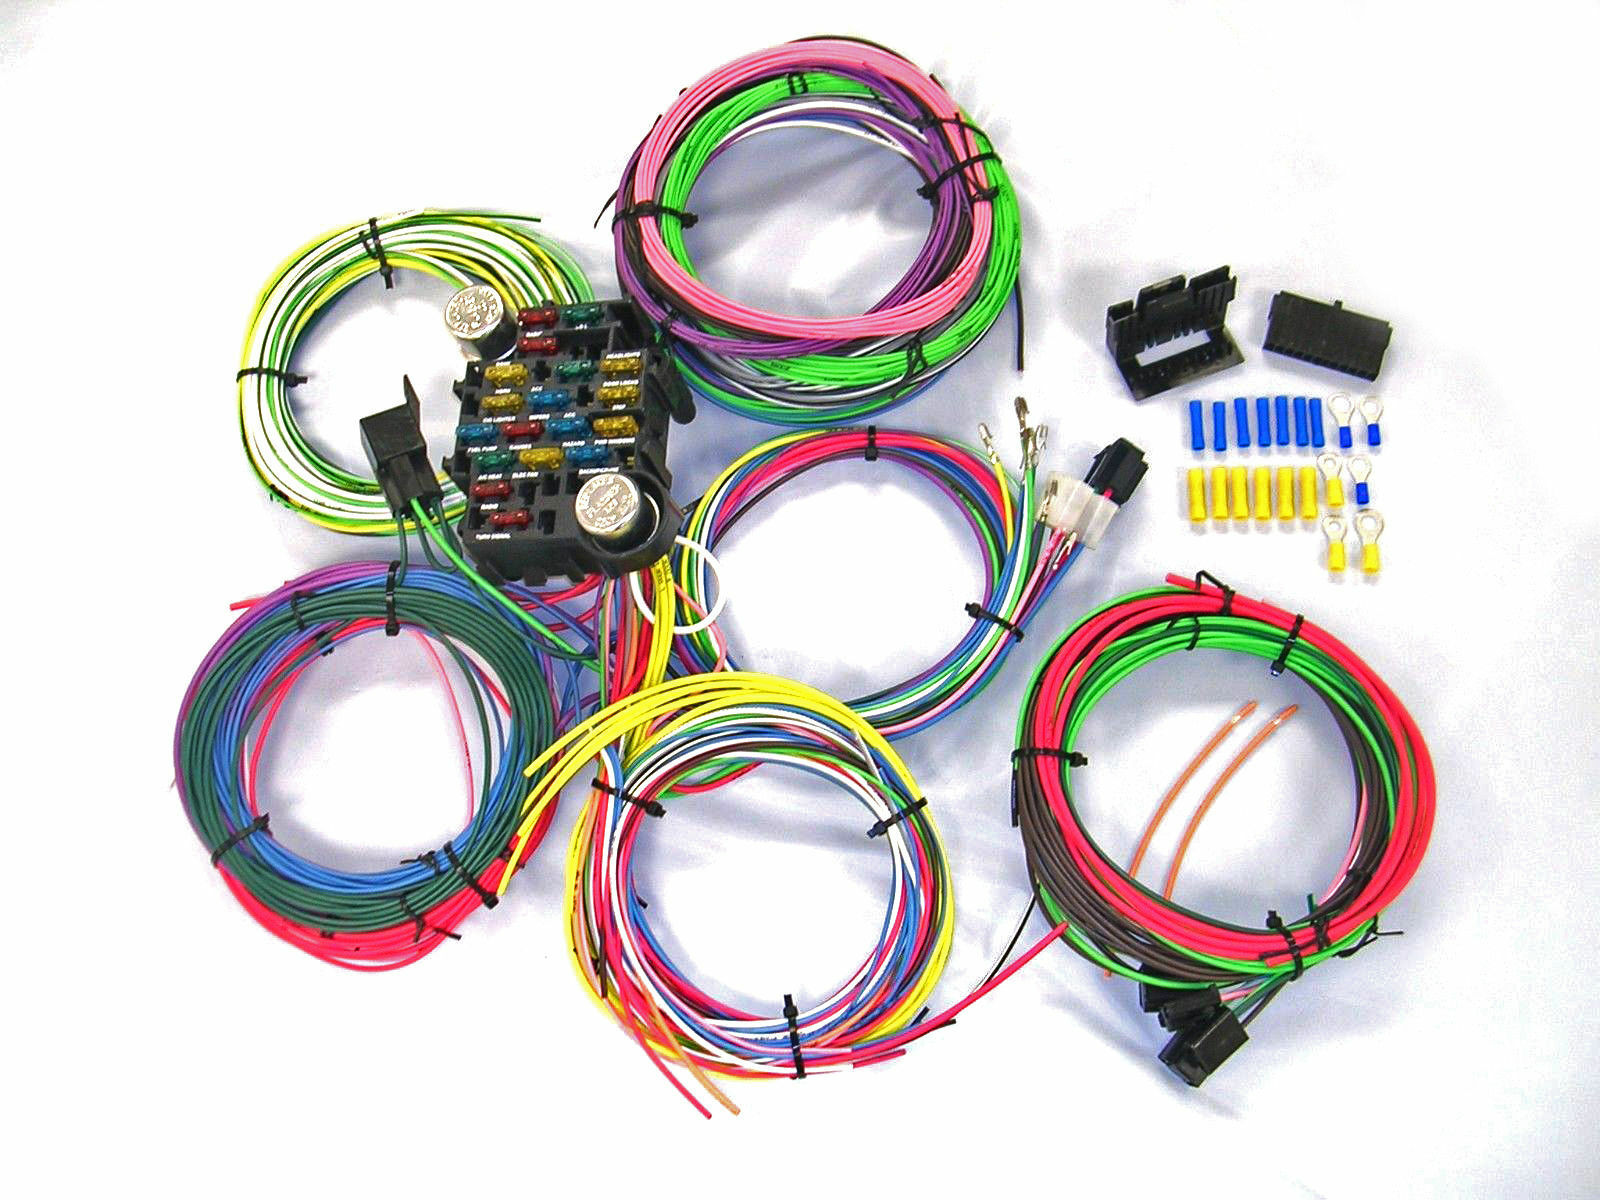 Universal Gearhead 1964 1965 1966 Ford Mustang Wire Wiring Harness Kit USA  Made 1 of 1Only 2 available ...